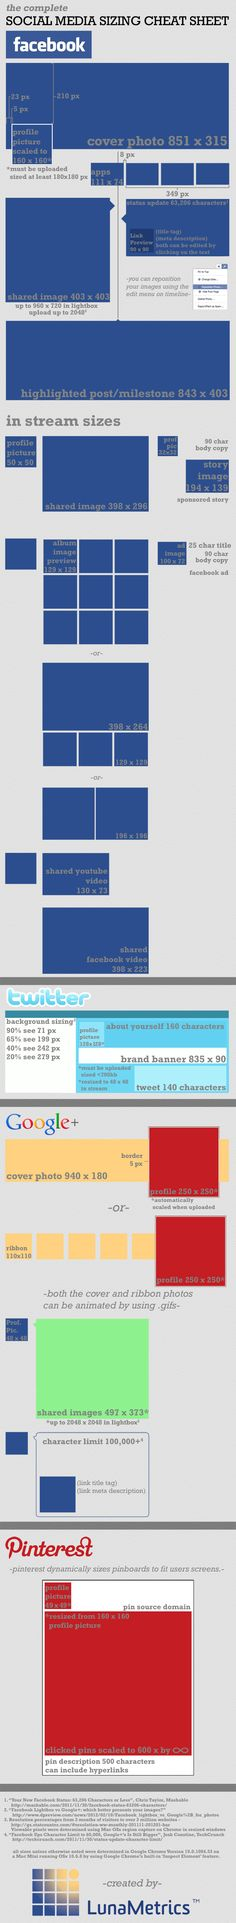 The Complete Social Media Sizing Cheat Sheet